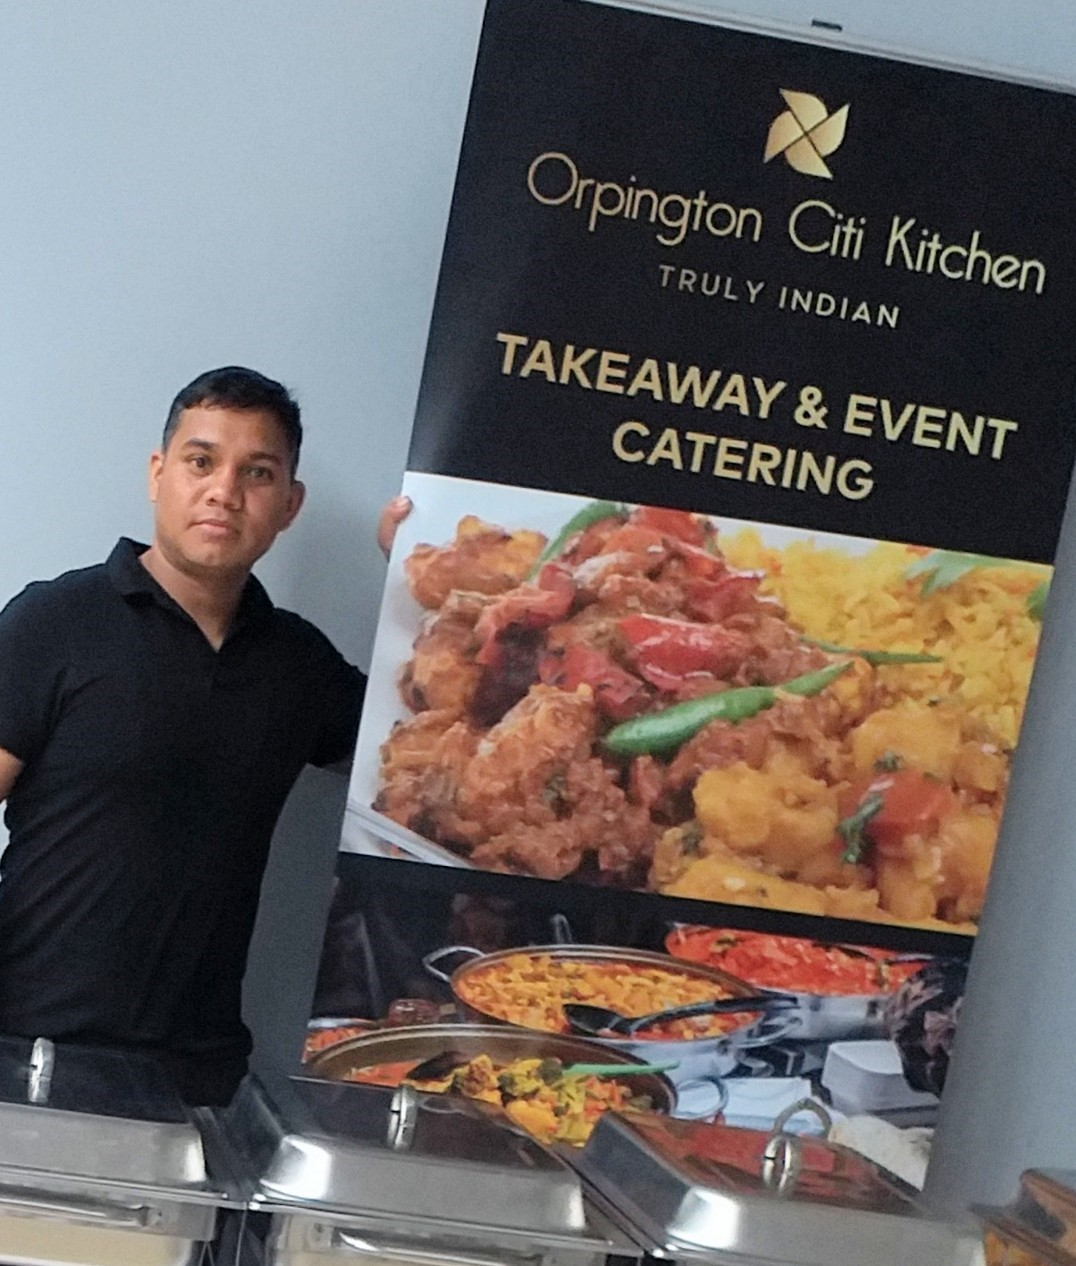 Owner at Orpington Citi Kitchen  br5